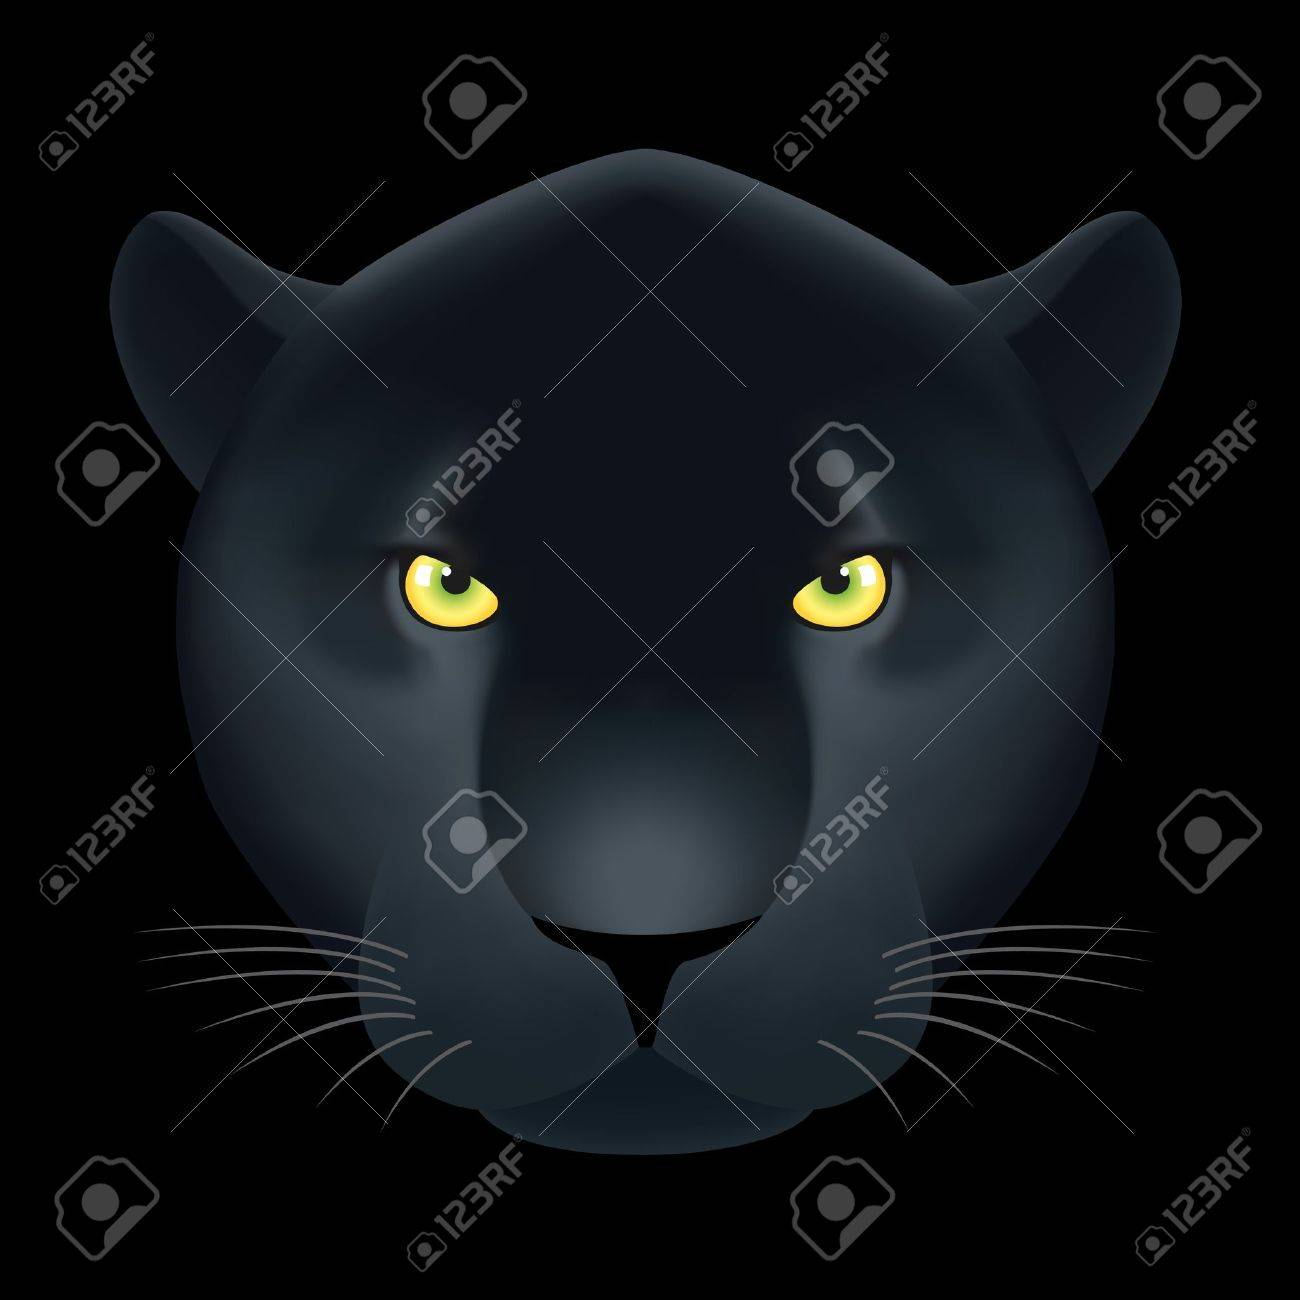 Black Panther Background Panther Head on Black